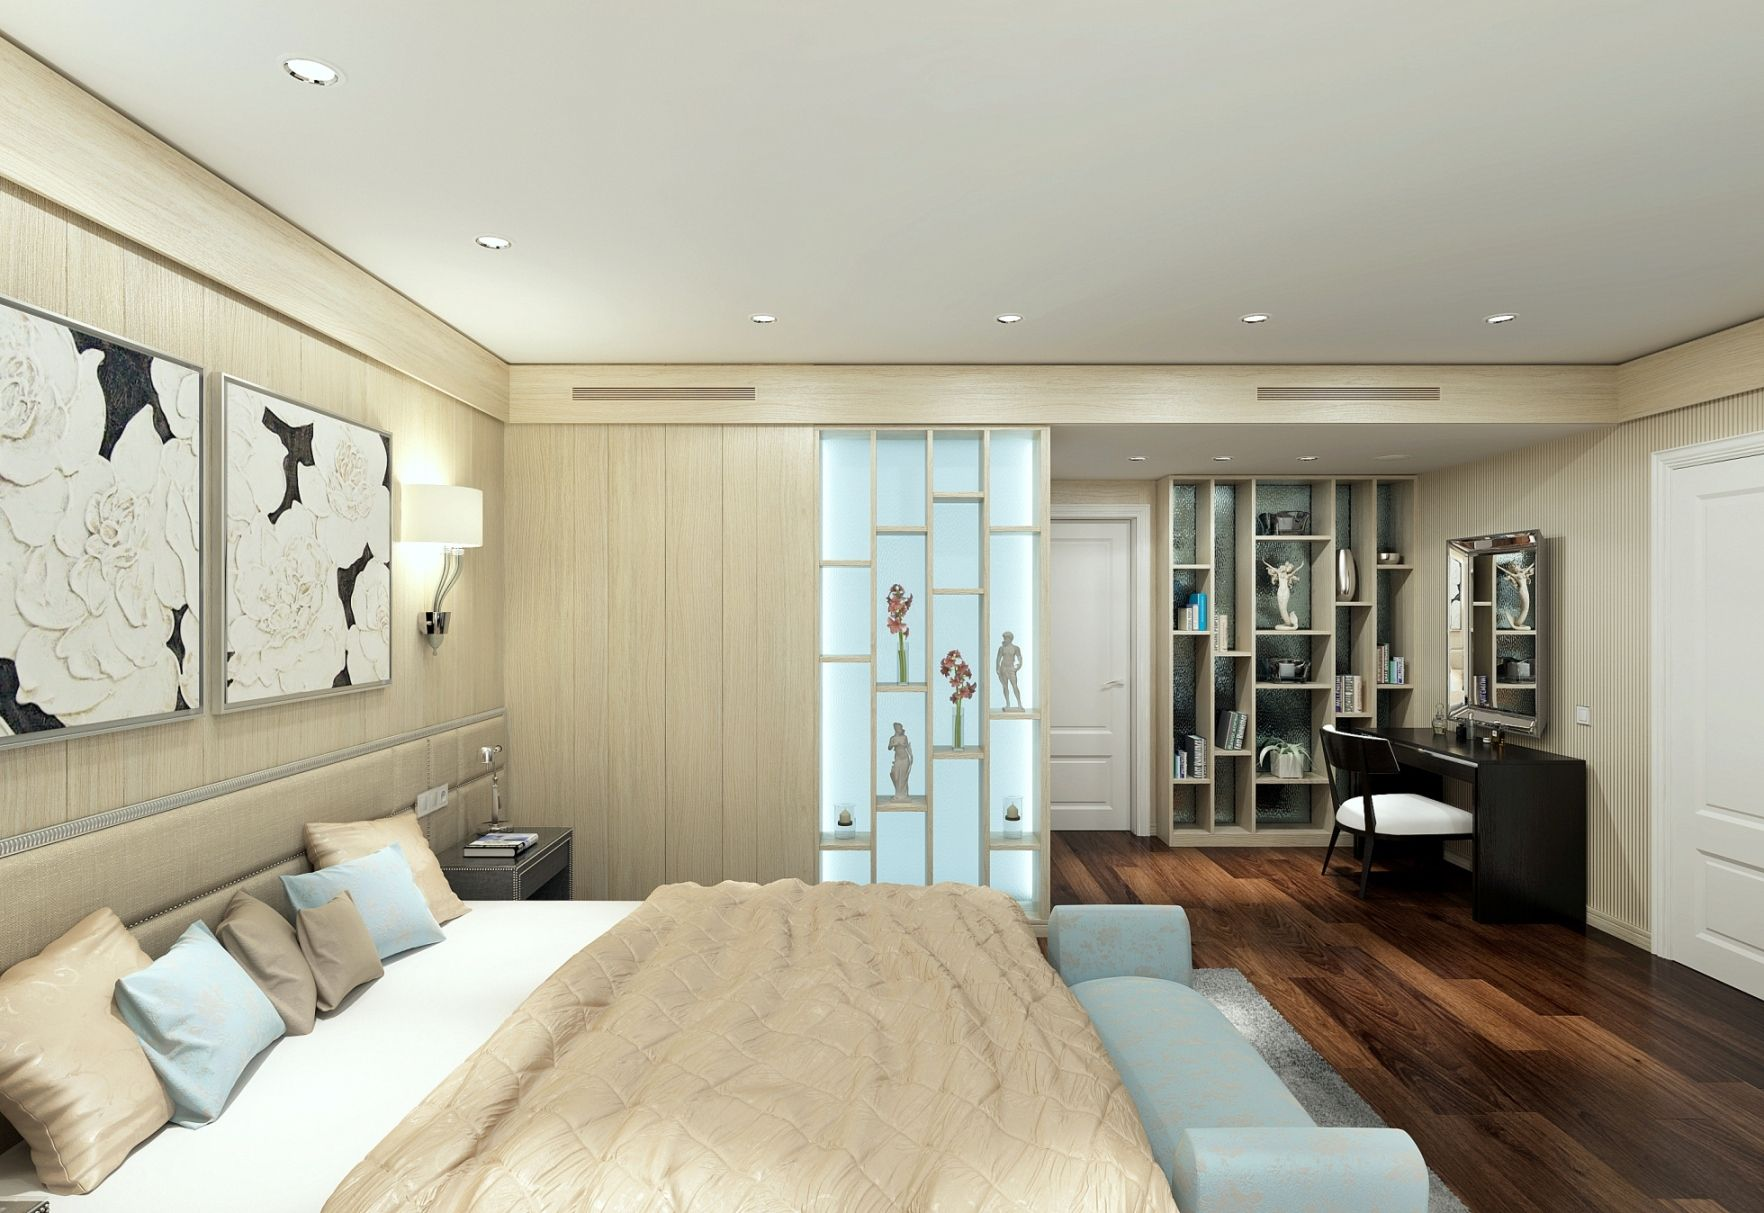 Design Of Master Bedroom Interior For Private House In Castelldefels, 08860  Barcelona Spain. Alexander